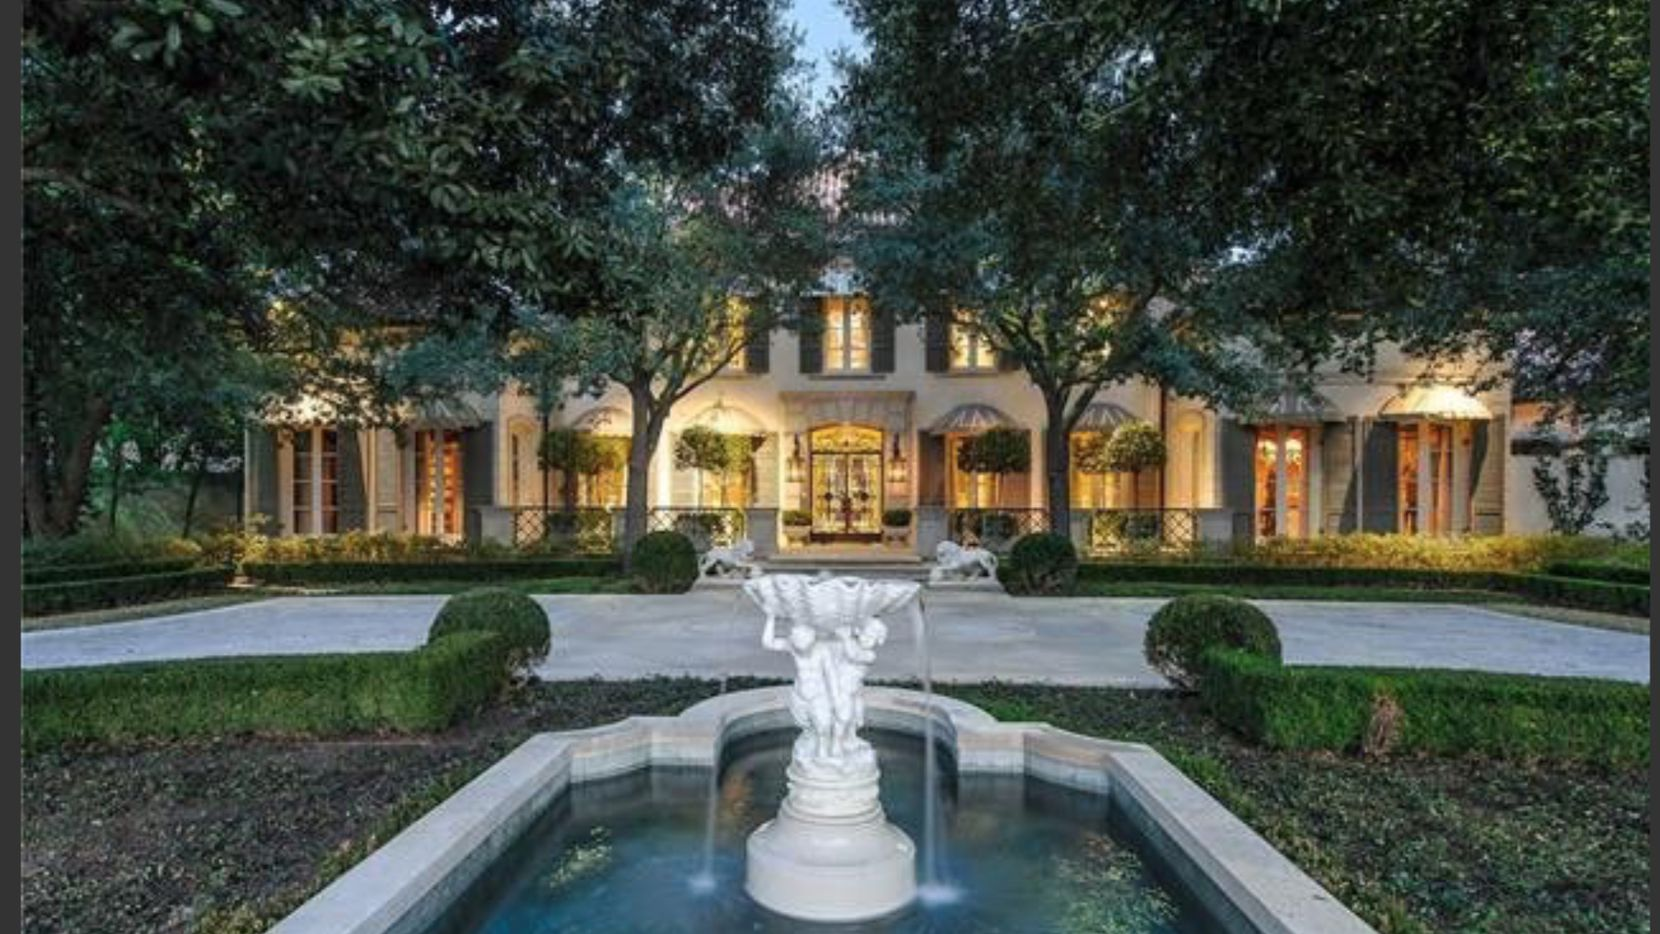 Oilman T. Boone Pickens' Preston Hollow mansion is for sale for just under $6 million.